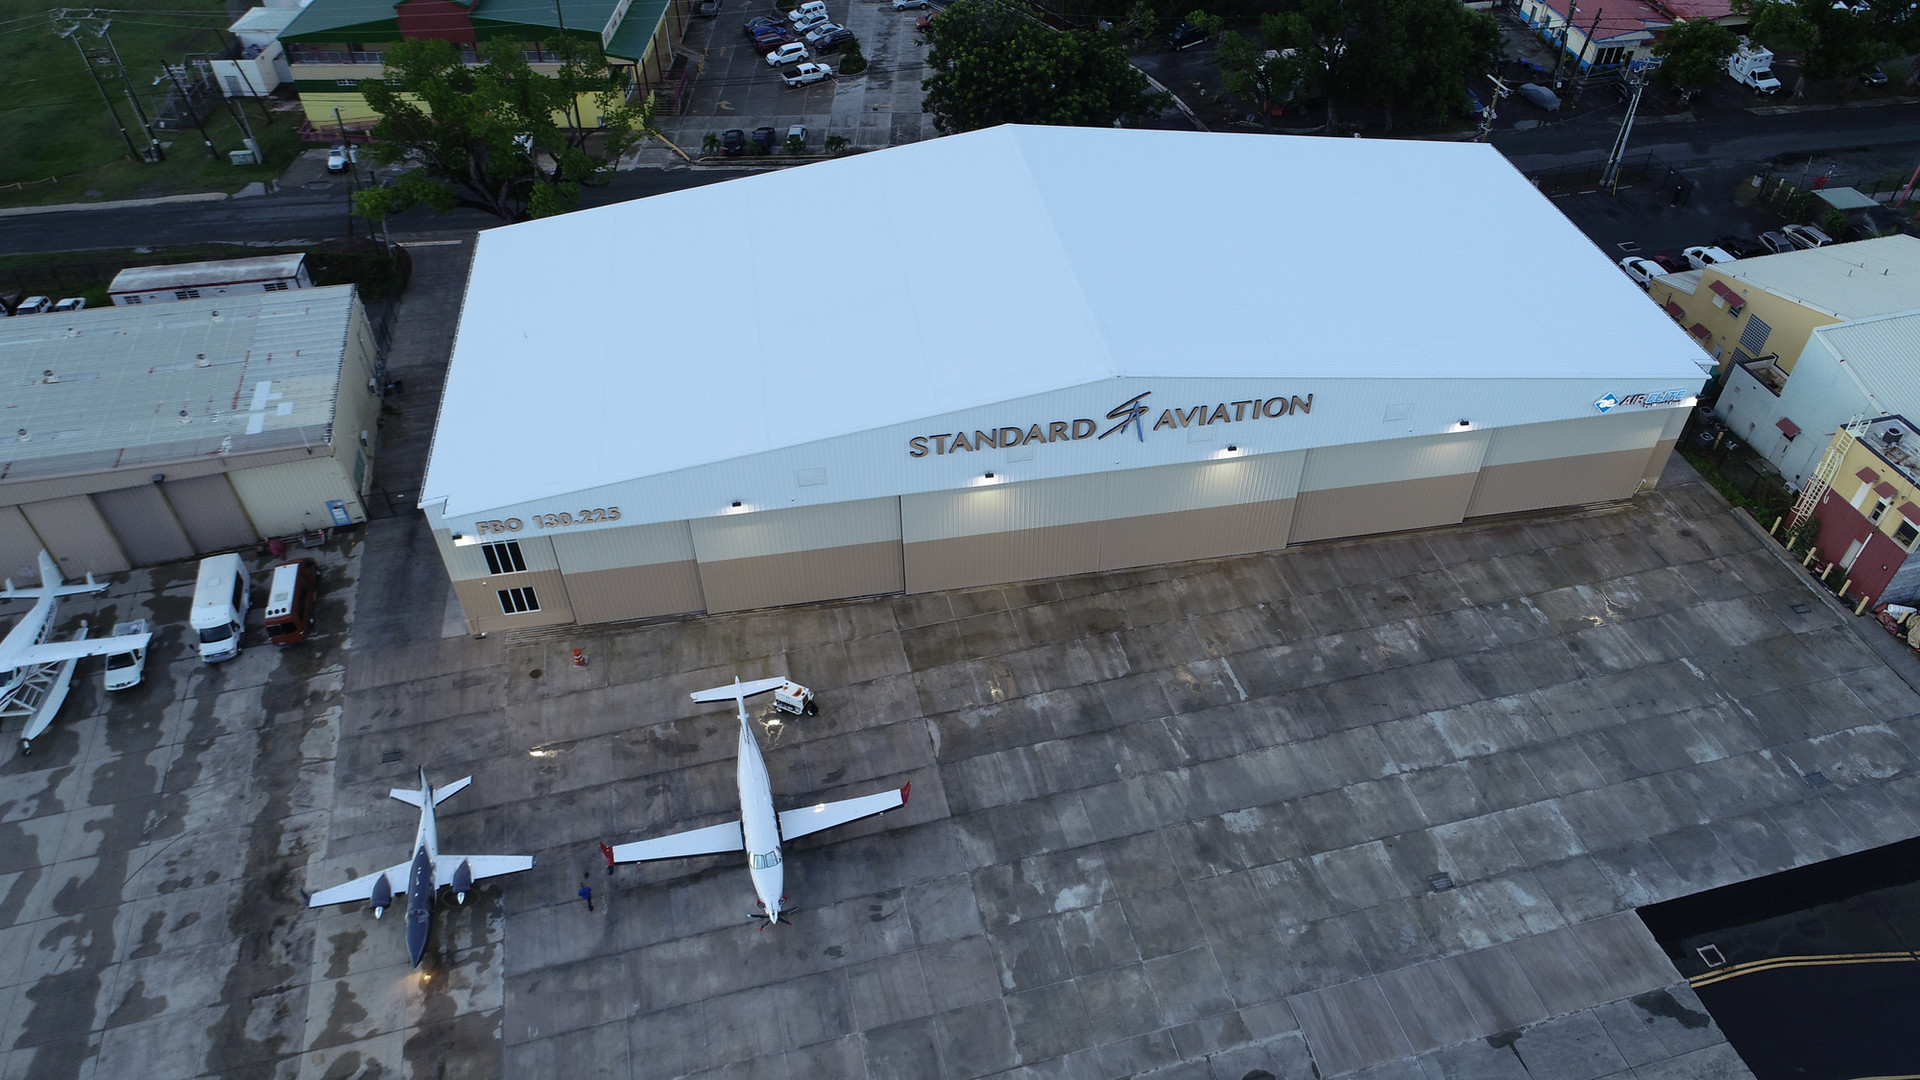 Standard Aviation Hangar